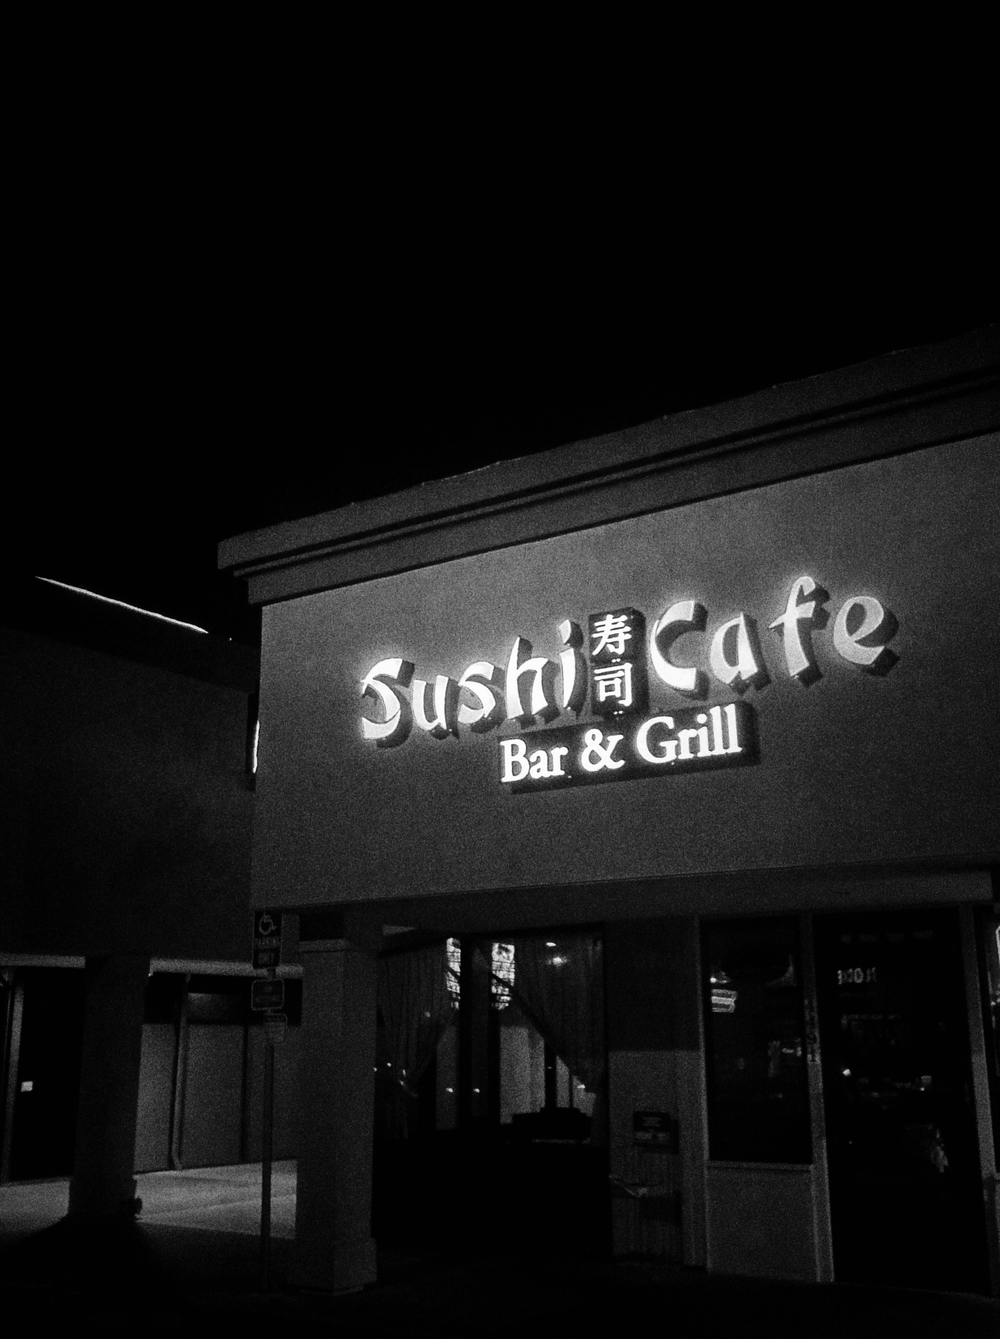 Sushi Cafe front - night time